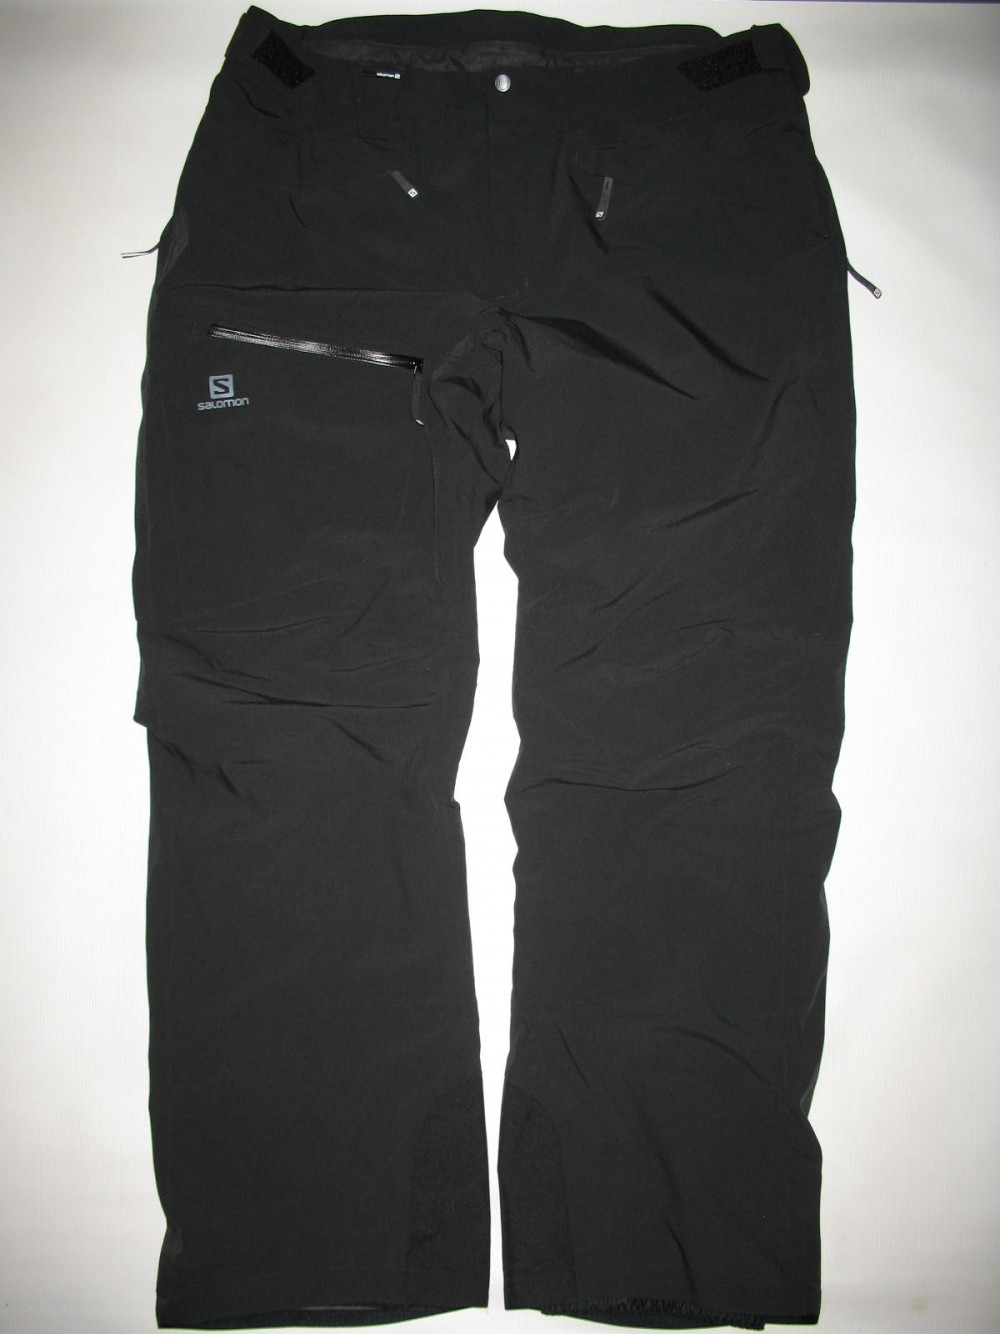 Штаны SALOMON chill out bib pant (размер XXL) - 4